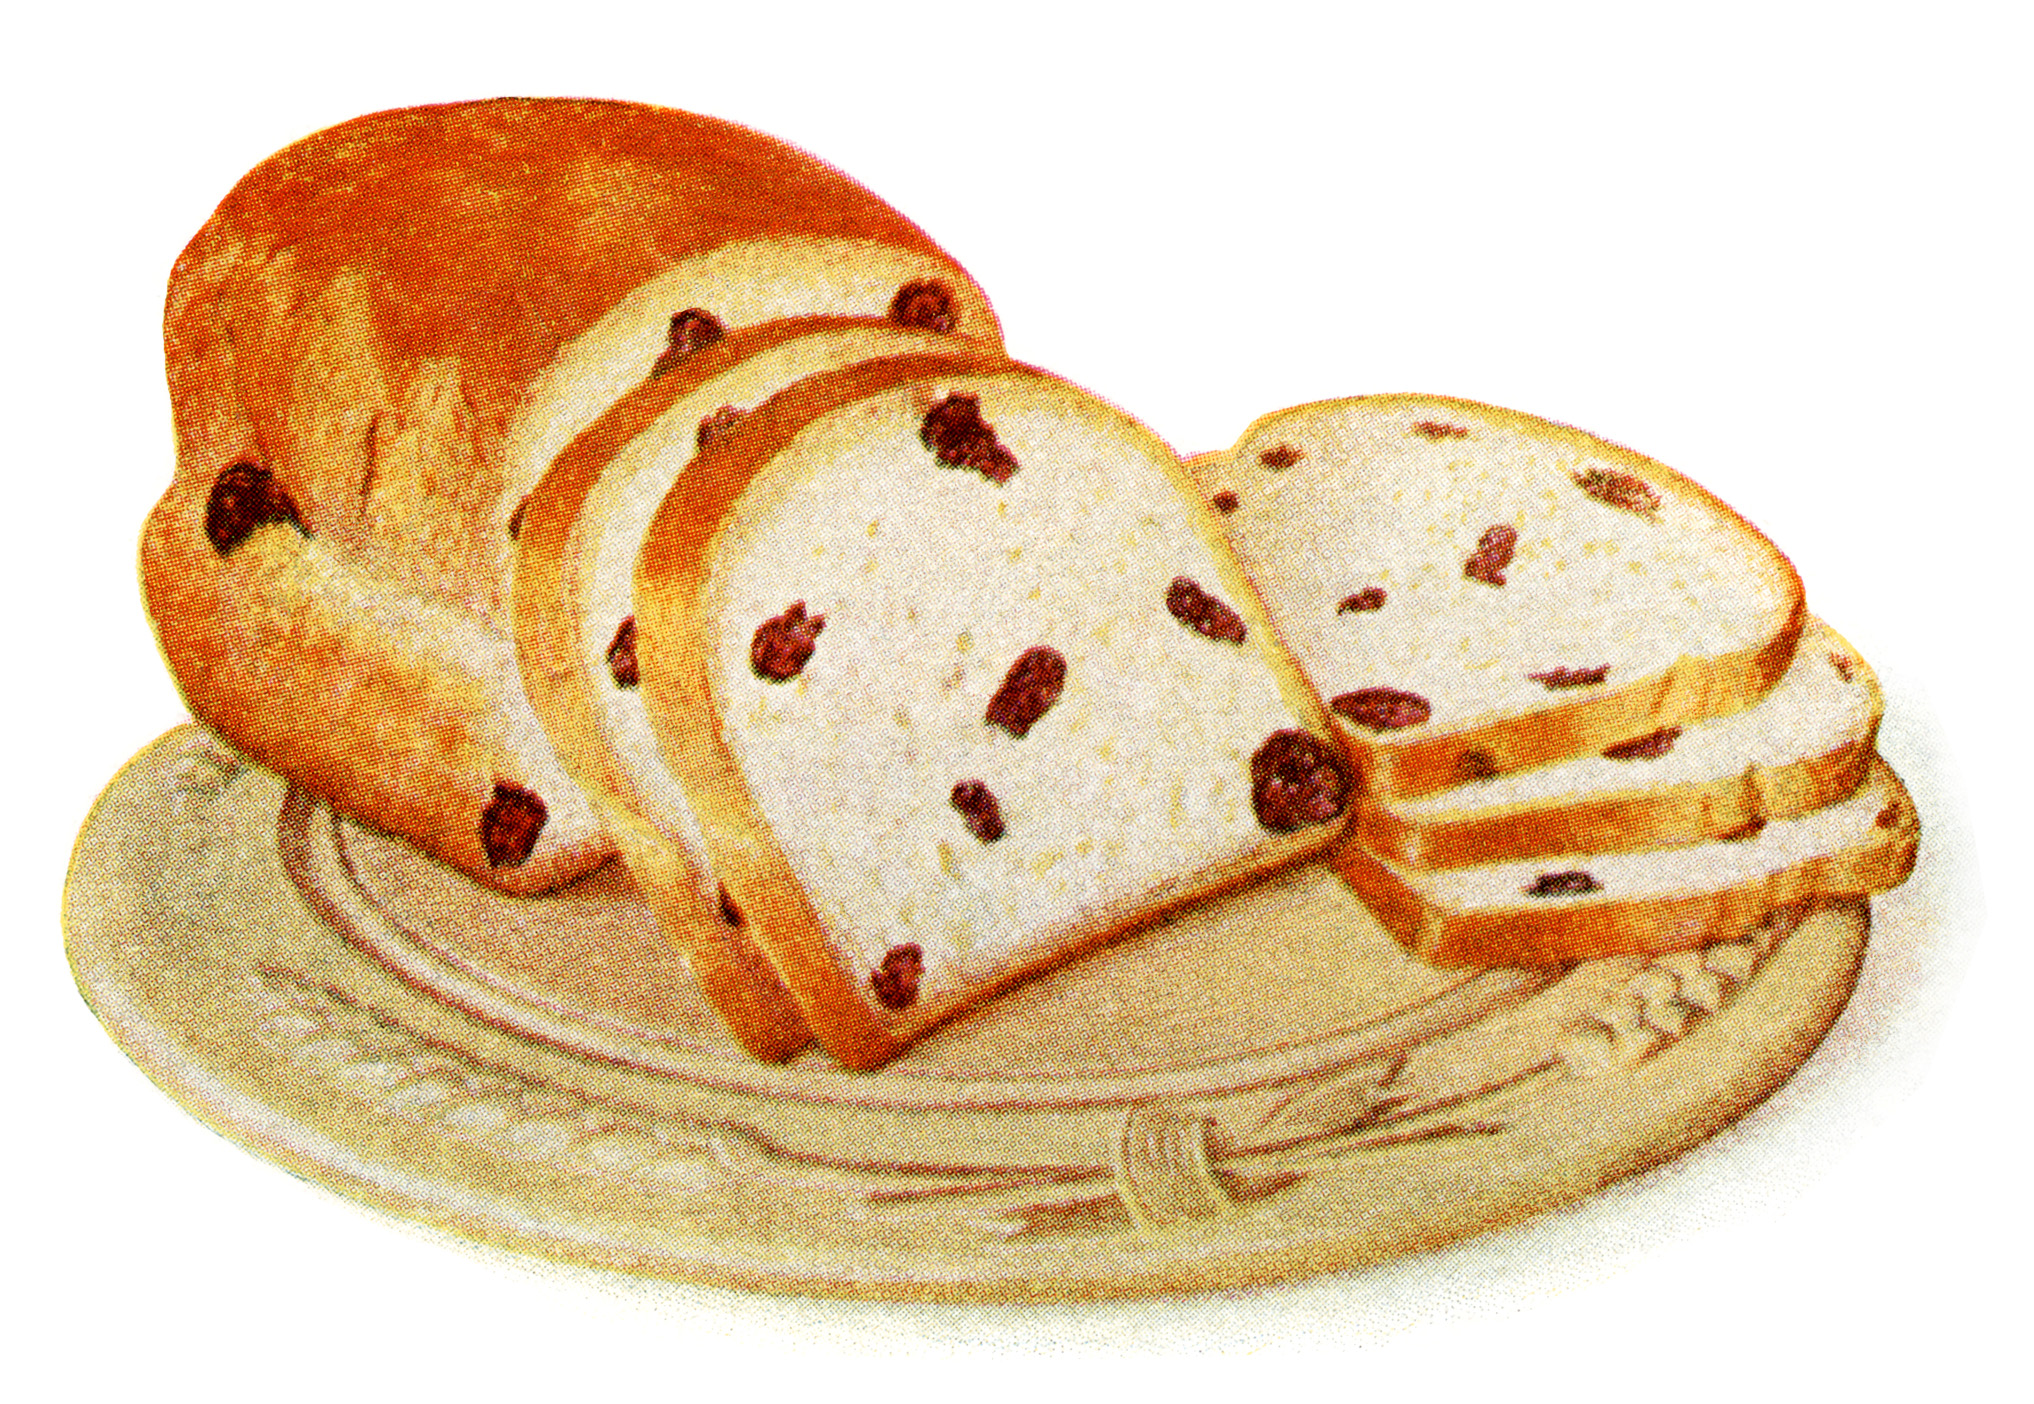 Bread clipart raisin bread. Homemade loaf of old